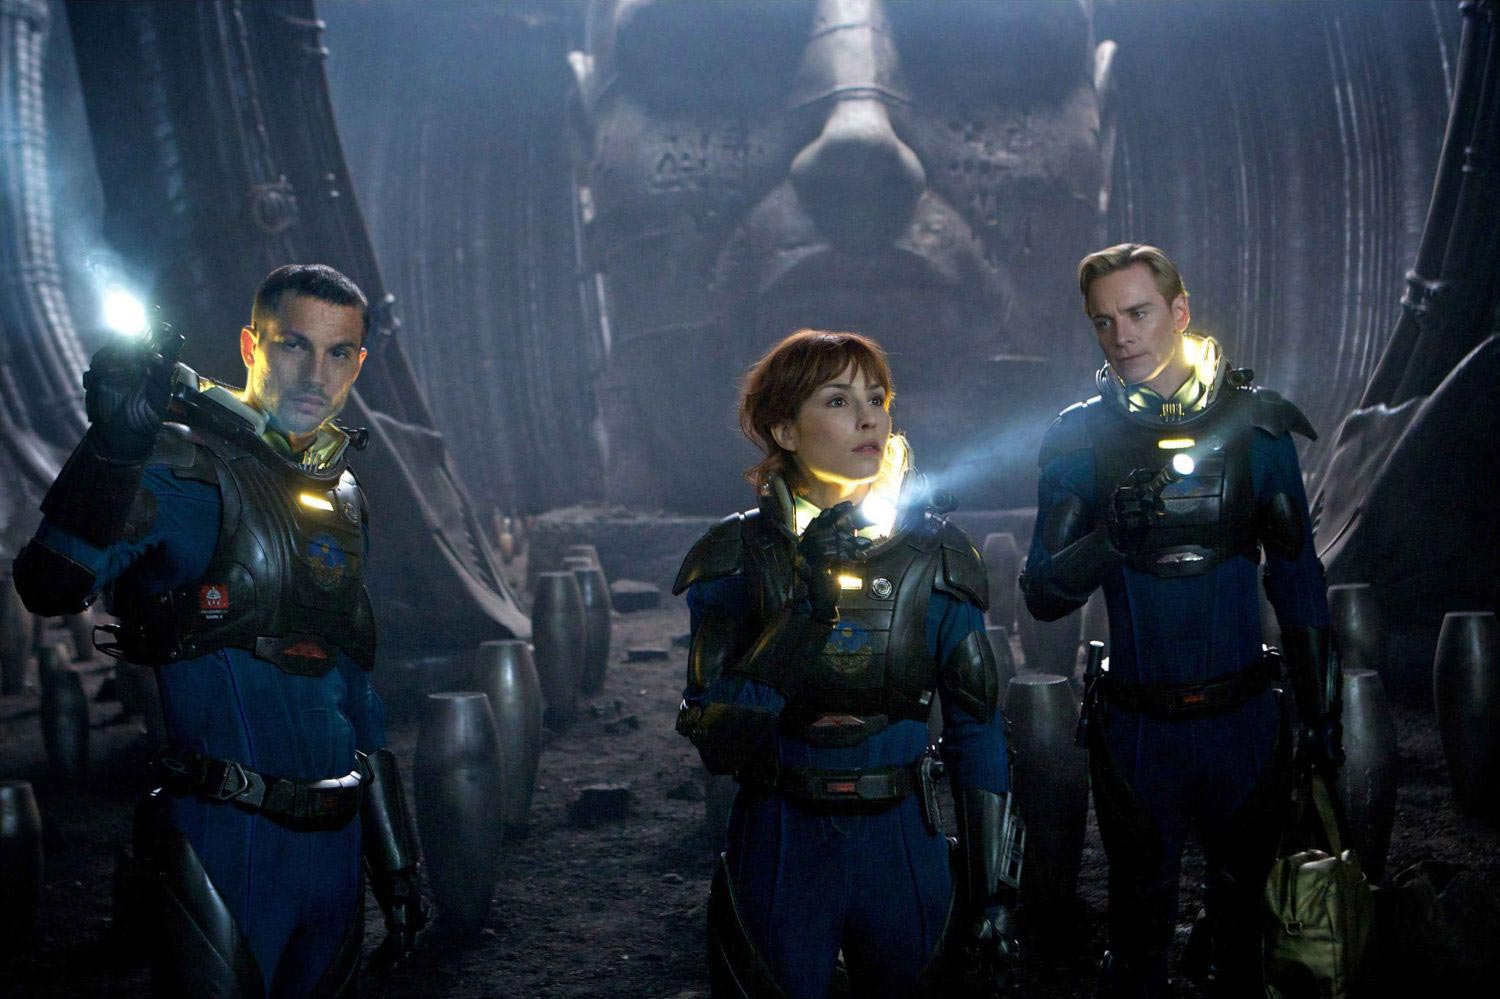 https://i2.wp.com/beginningandend.com/wp-content/uploads/2012/01/Prometheus_movie_exploring-cave.jpg